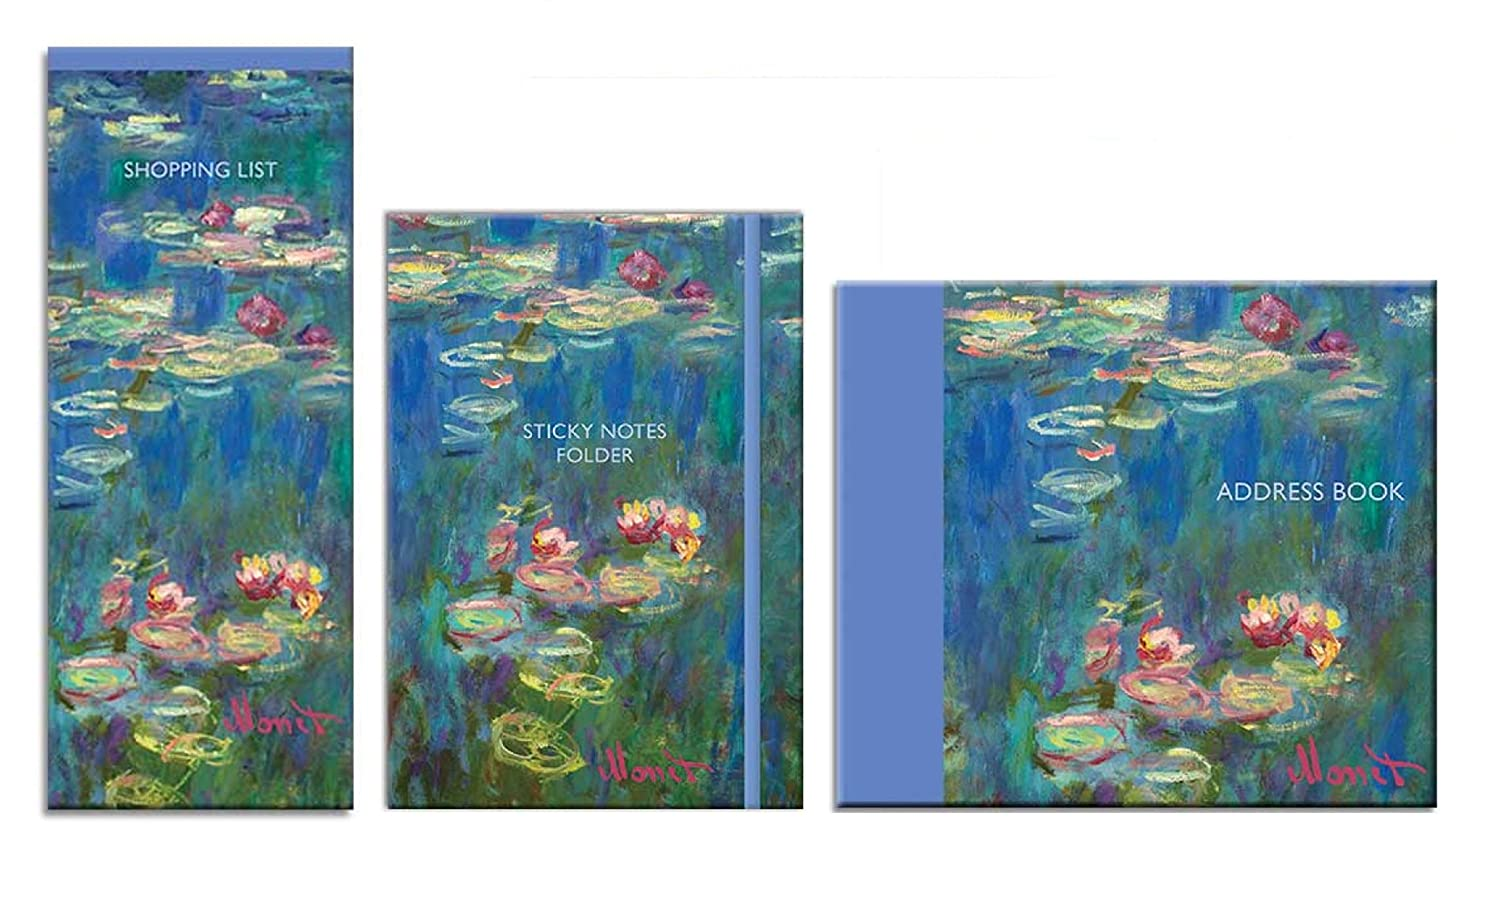 Claude Monet Stationery Bundle - Lista de compras, carpeta ...